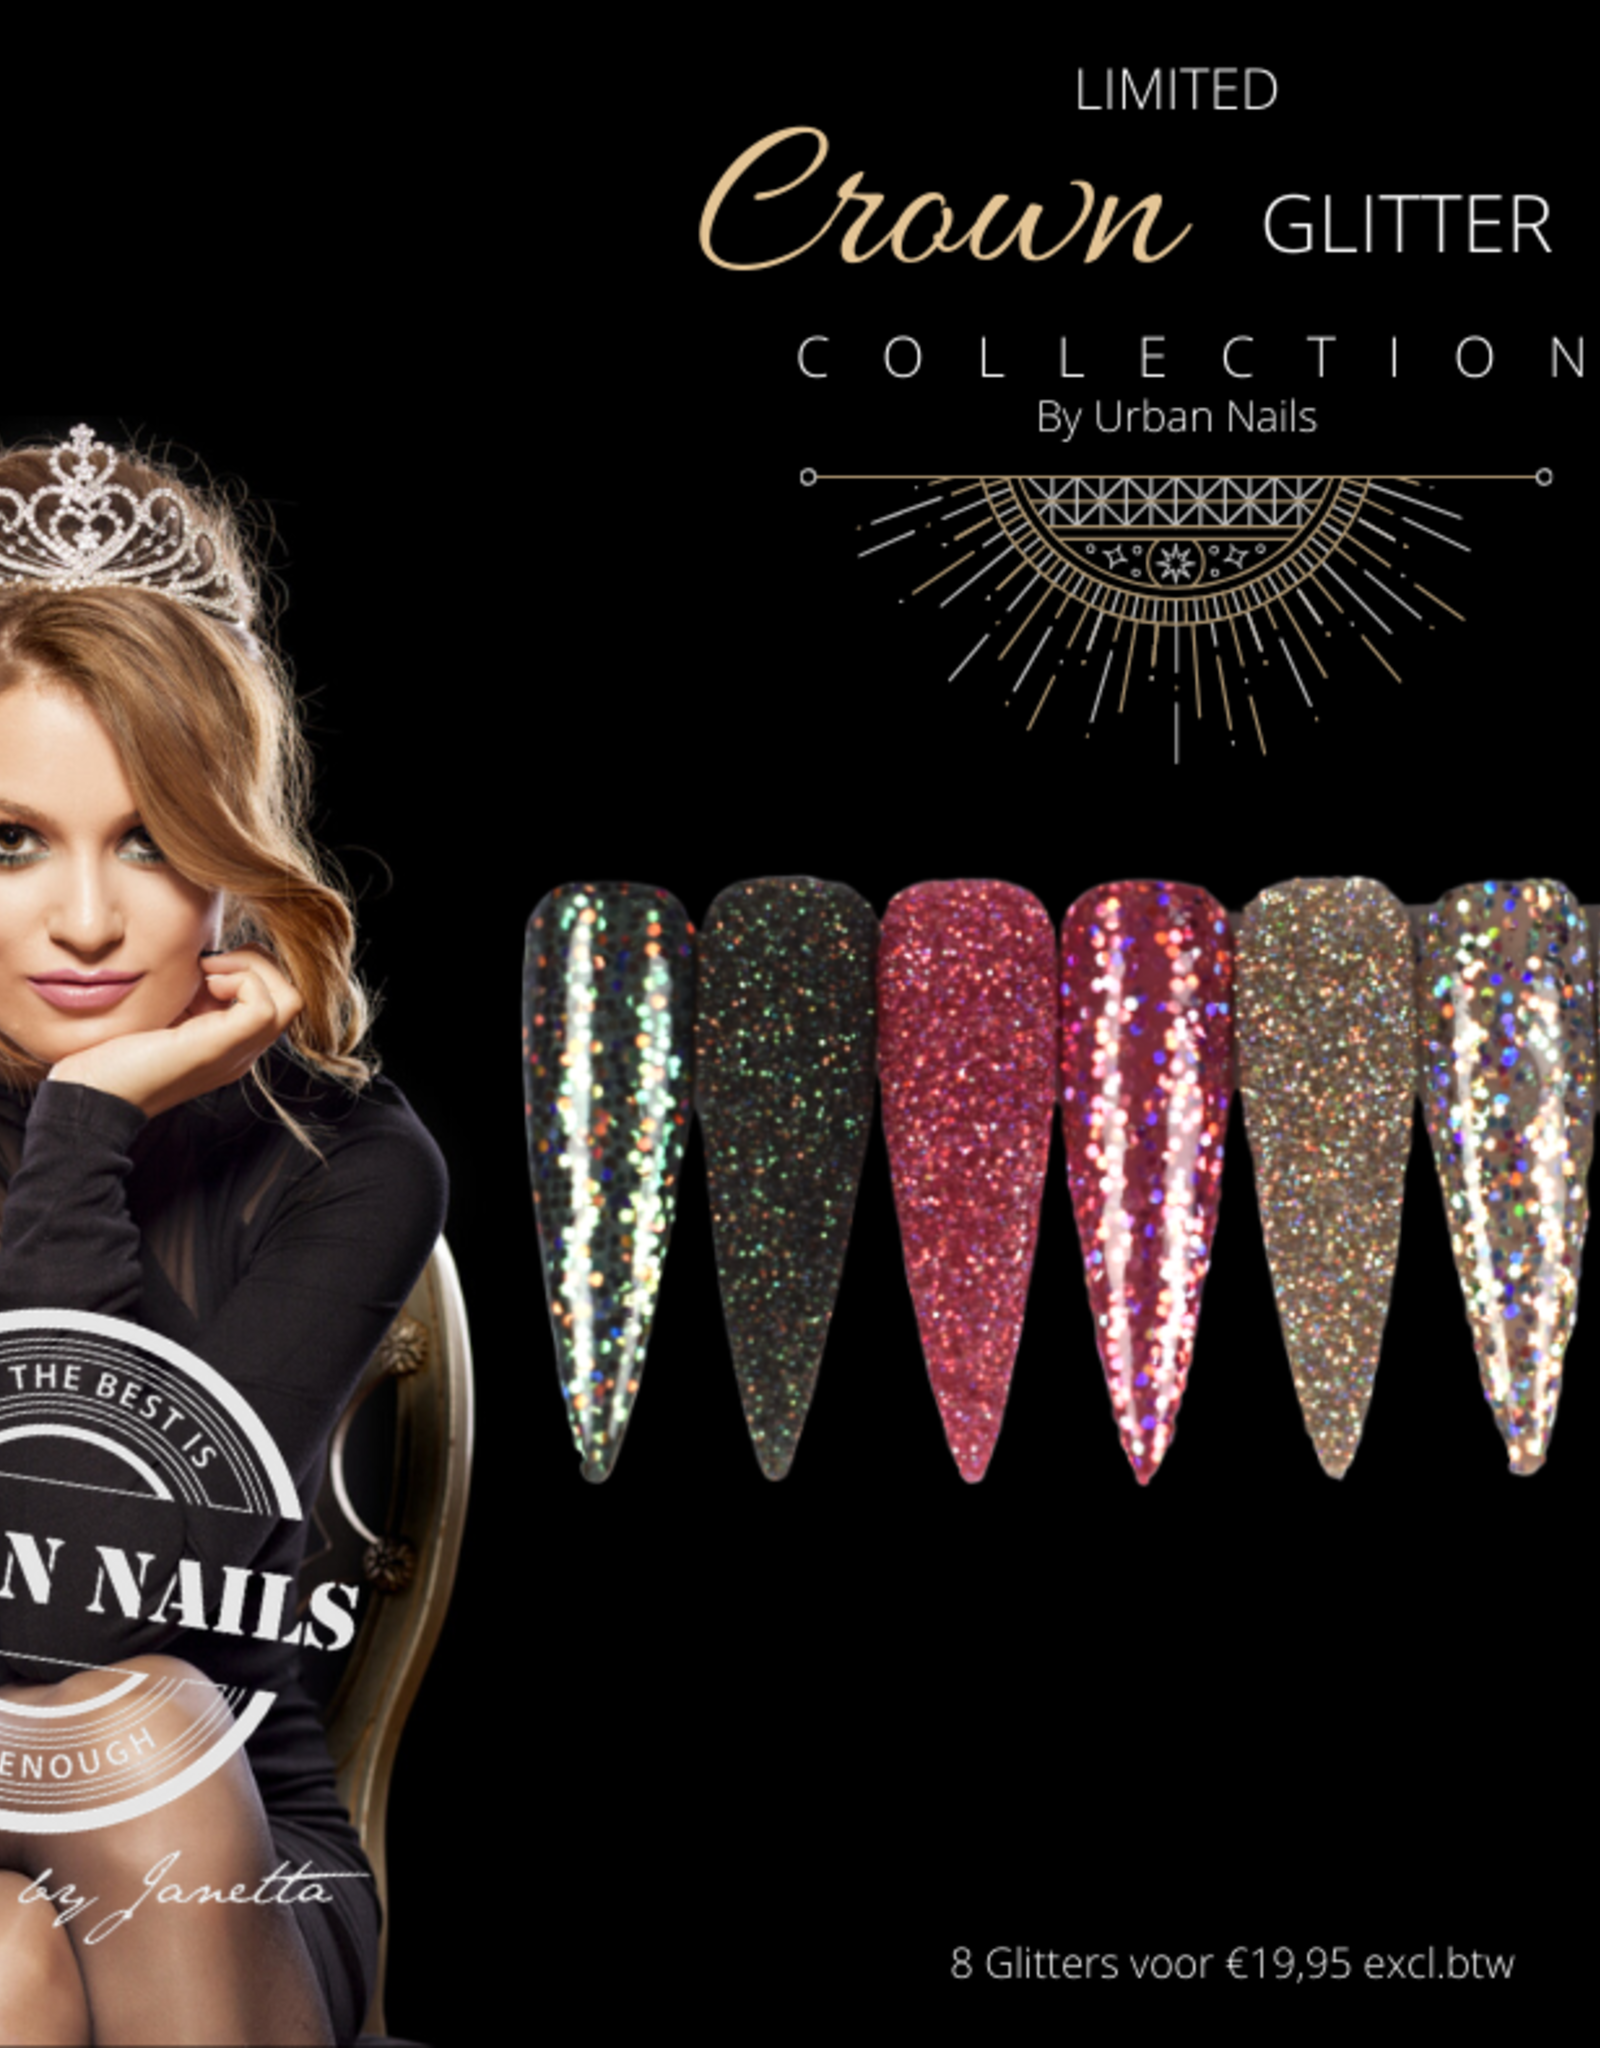 Urban Nails Crown Glitter Collection